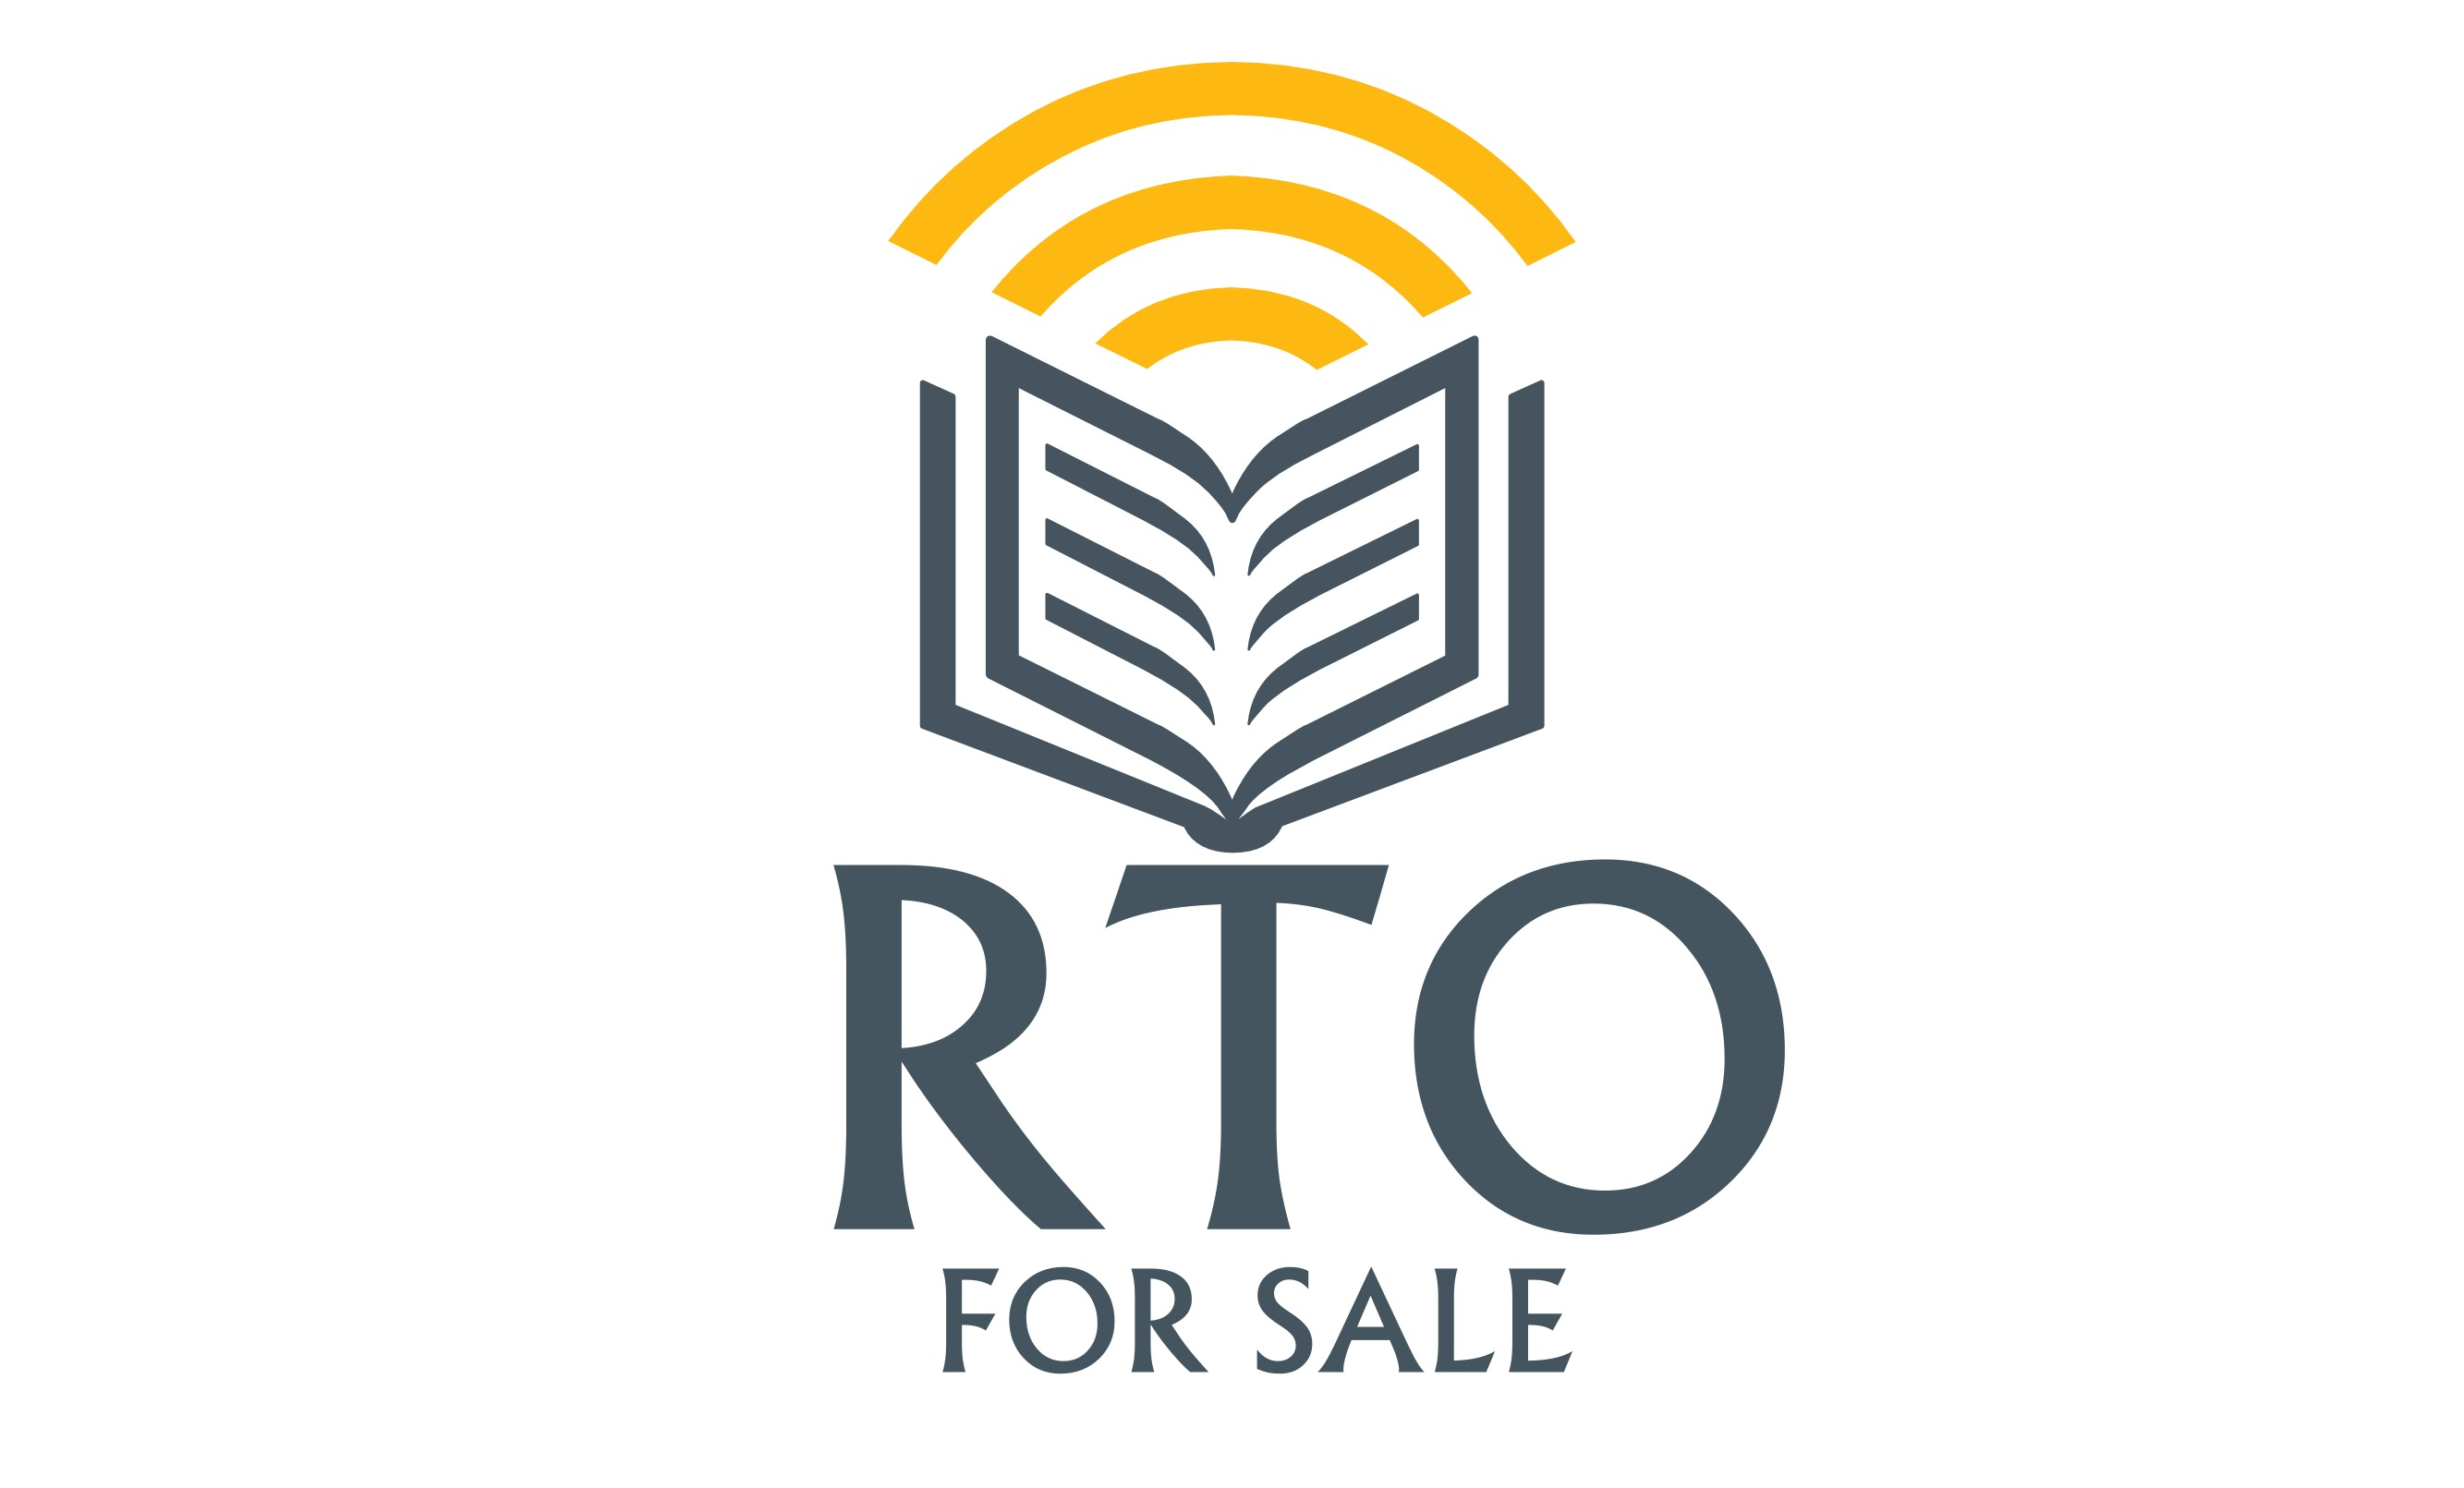 NSW based RTO with negotiable settlement terms